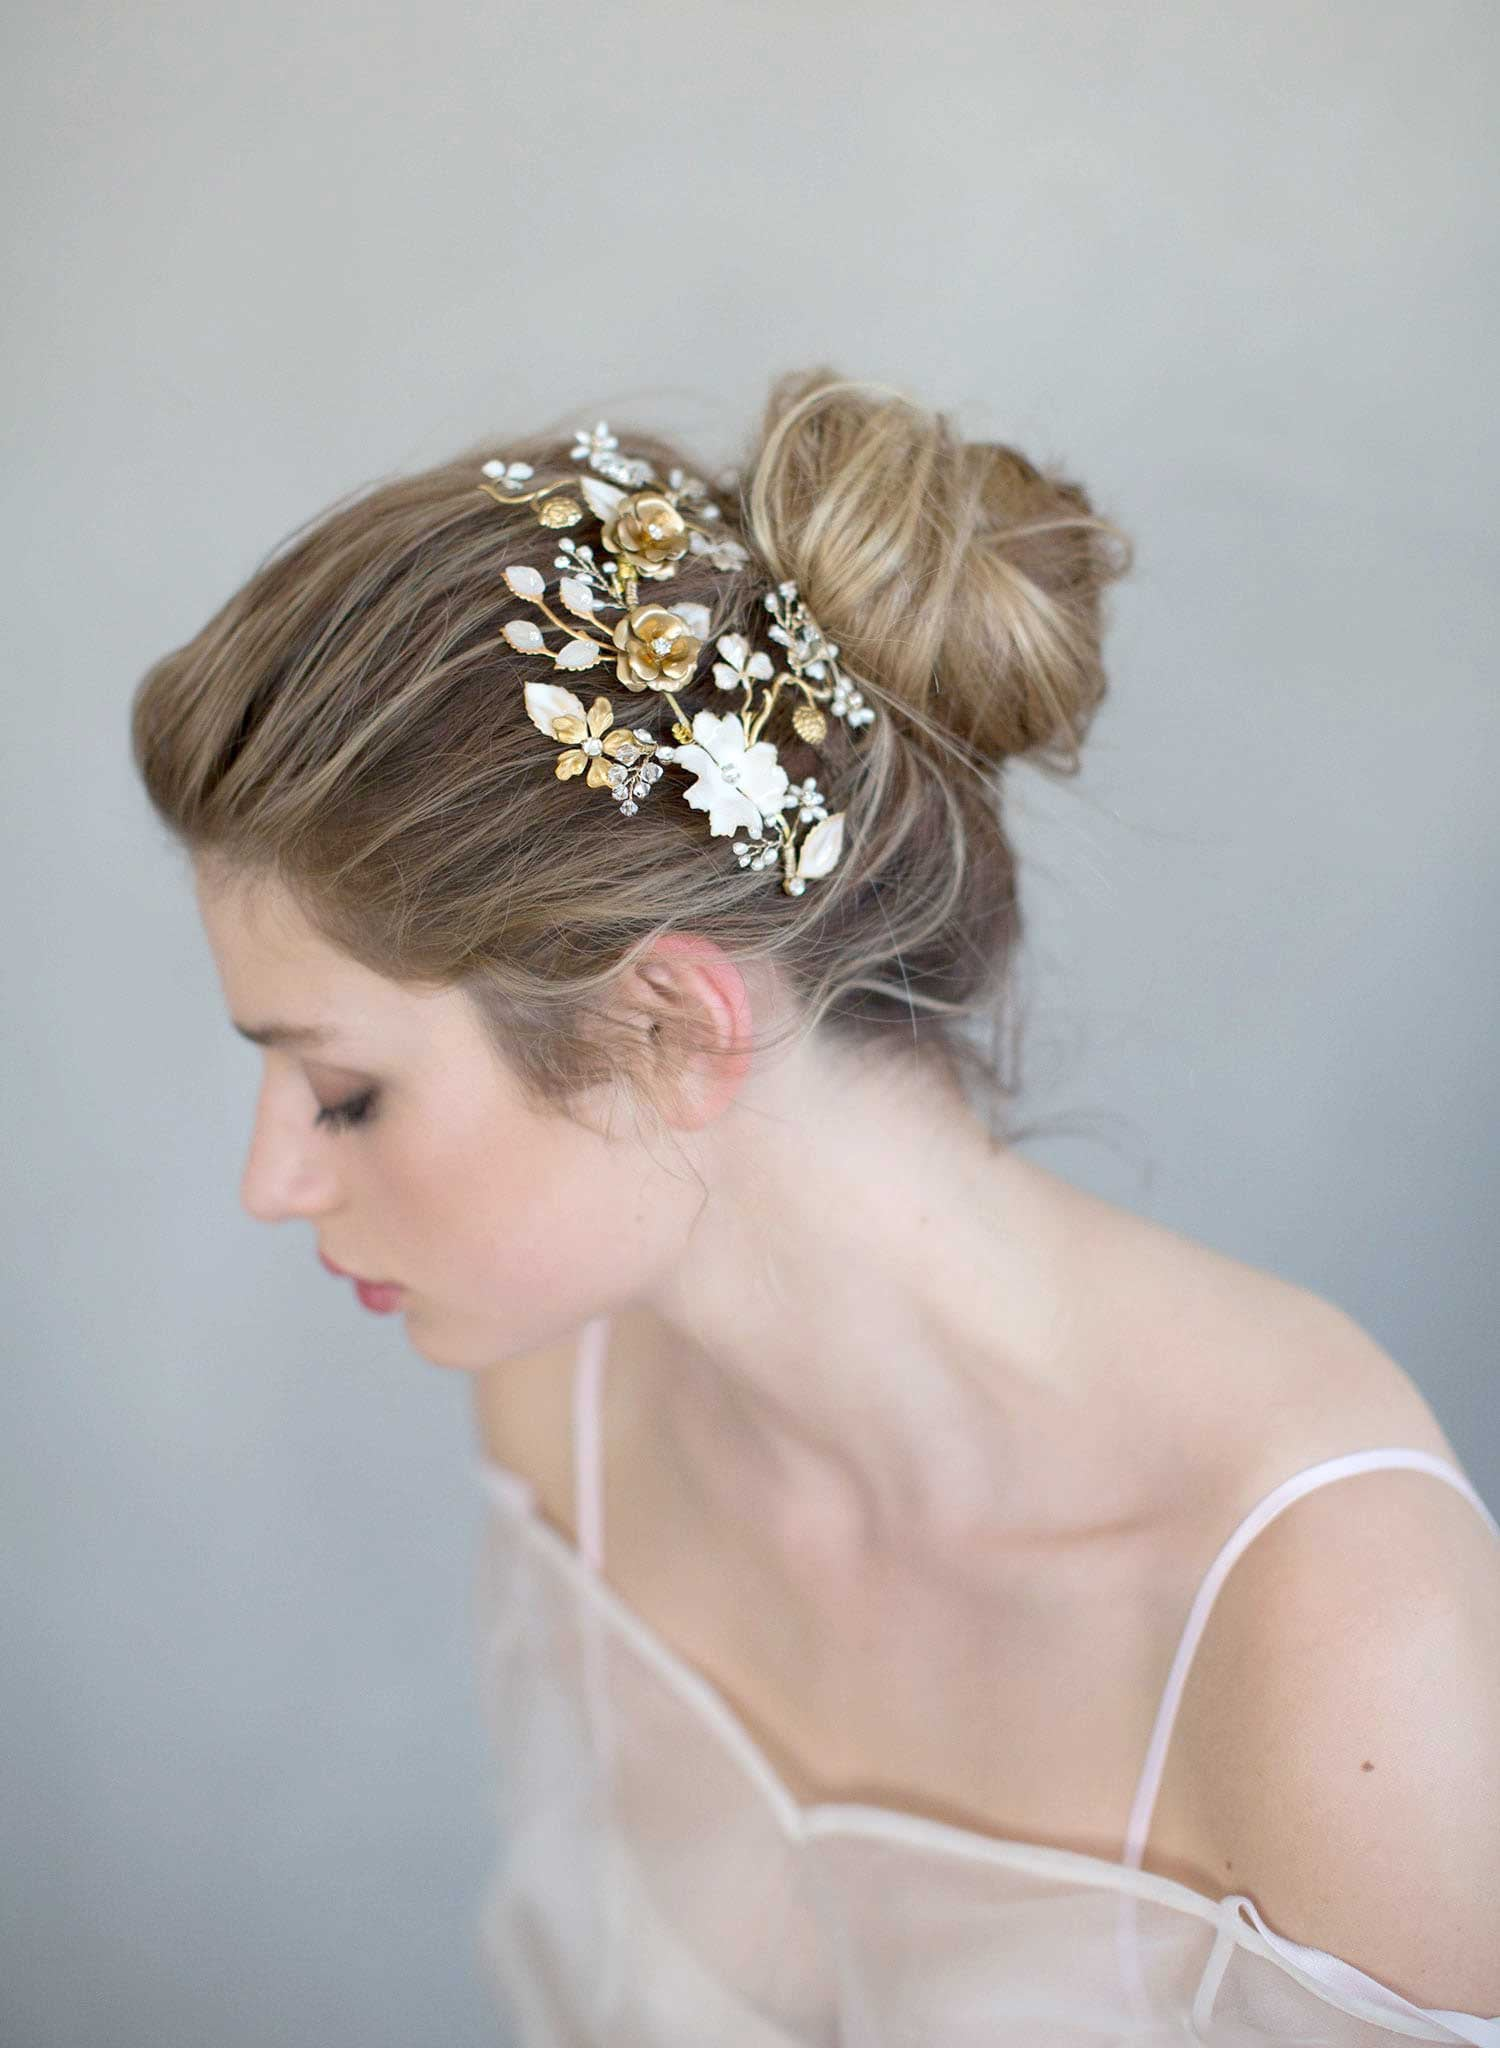 Sweet blossom and bloom headpiece - Style #761